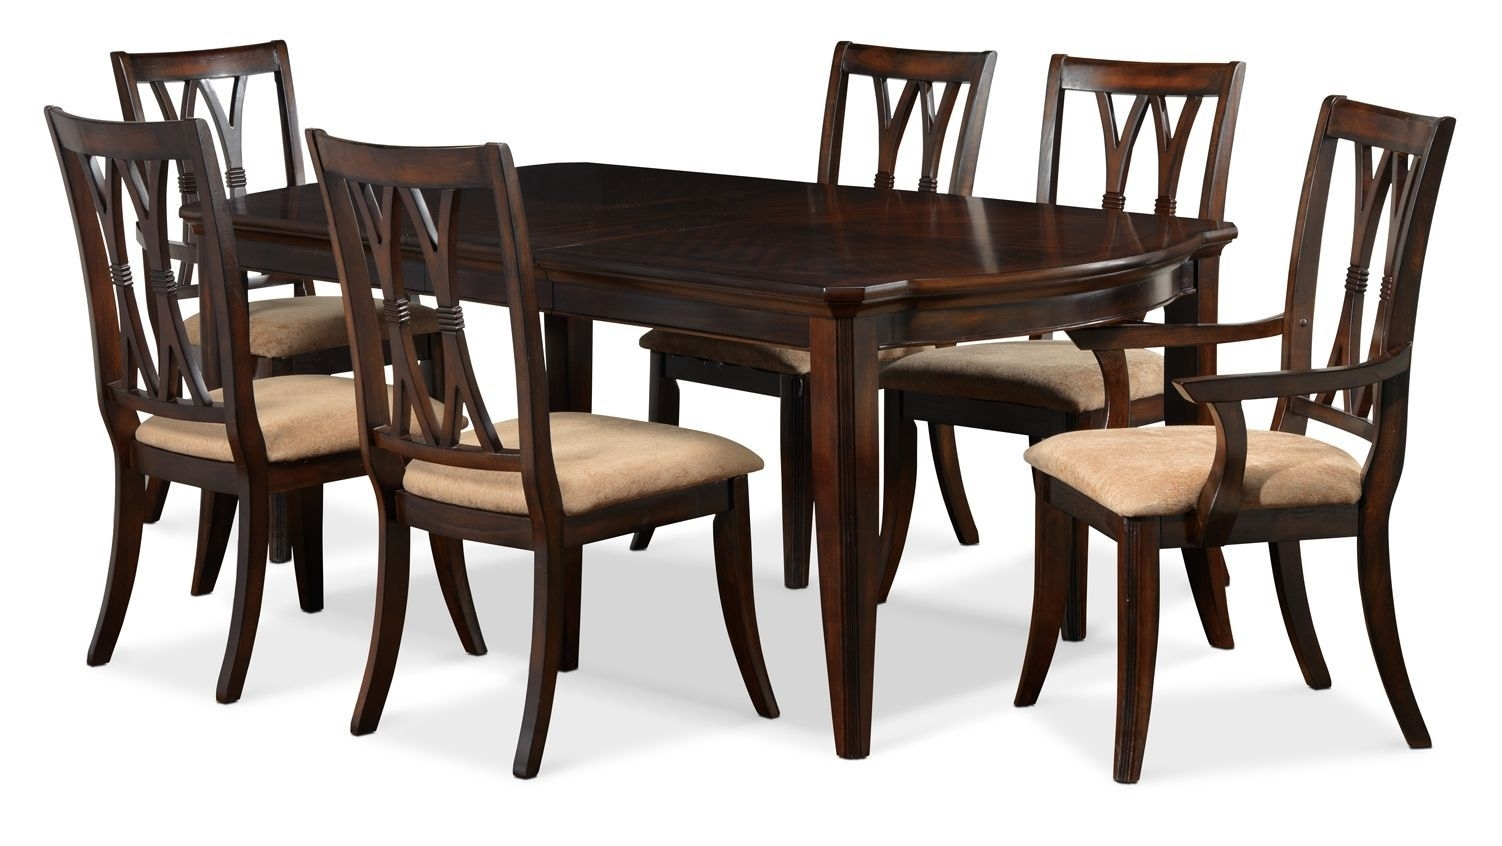 Incredible King George Dining Room 7 Pc Dining Set Leon Overwhelming Within Latest Leon Dining Tables (Image 5 of 20)